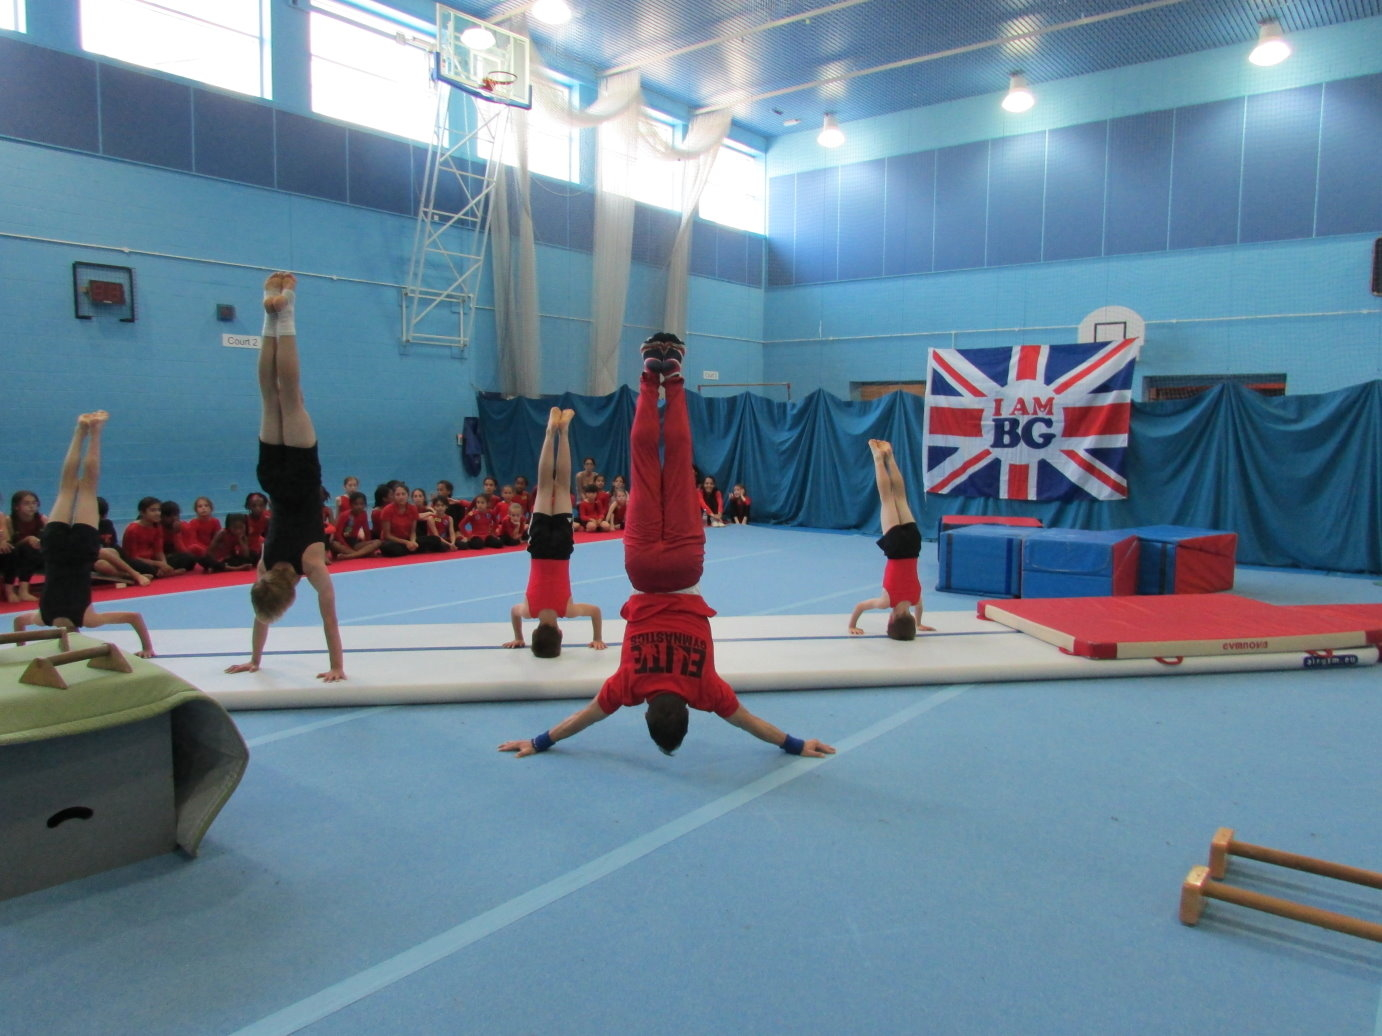 Elite Gymnastics Club London